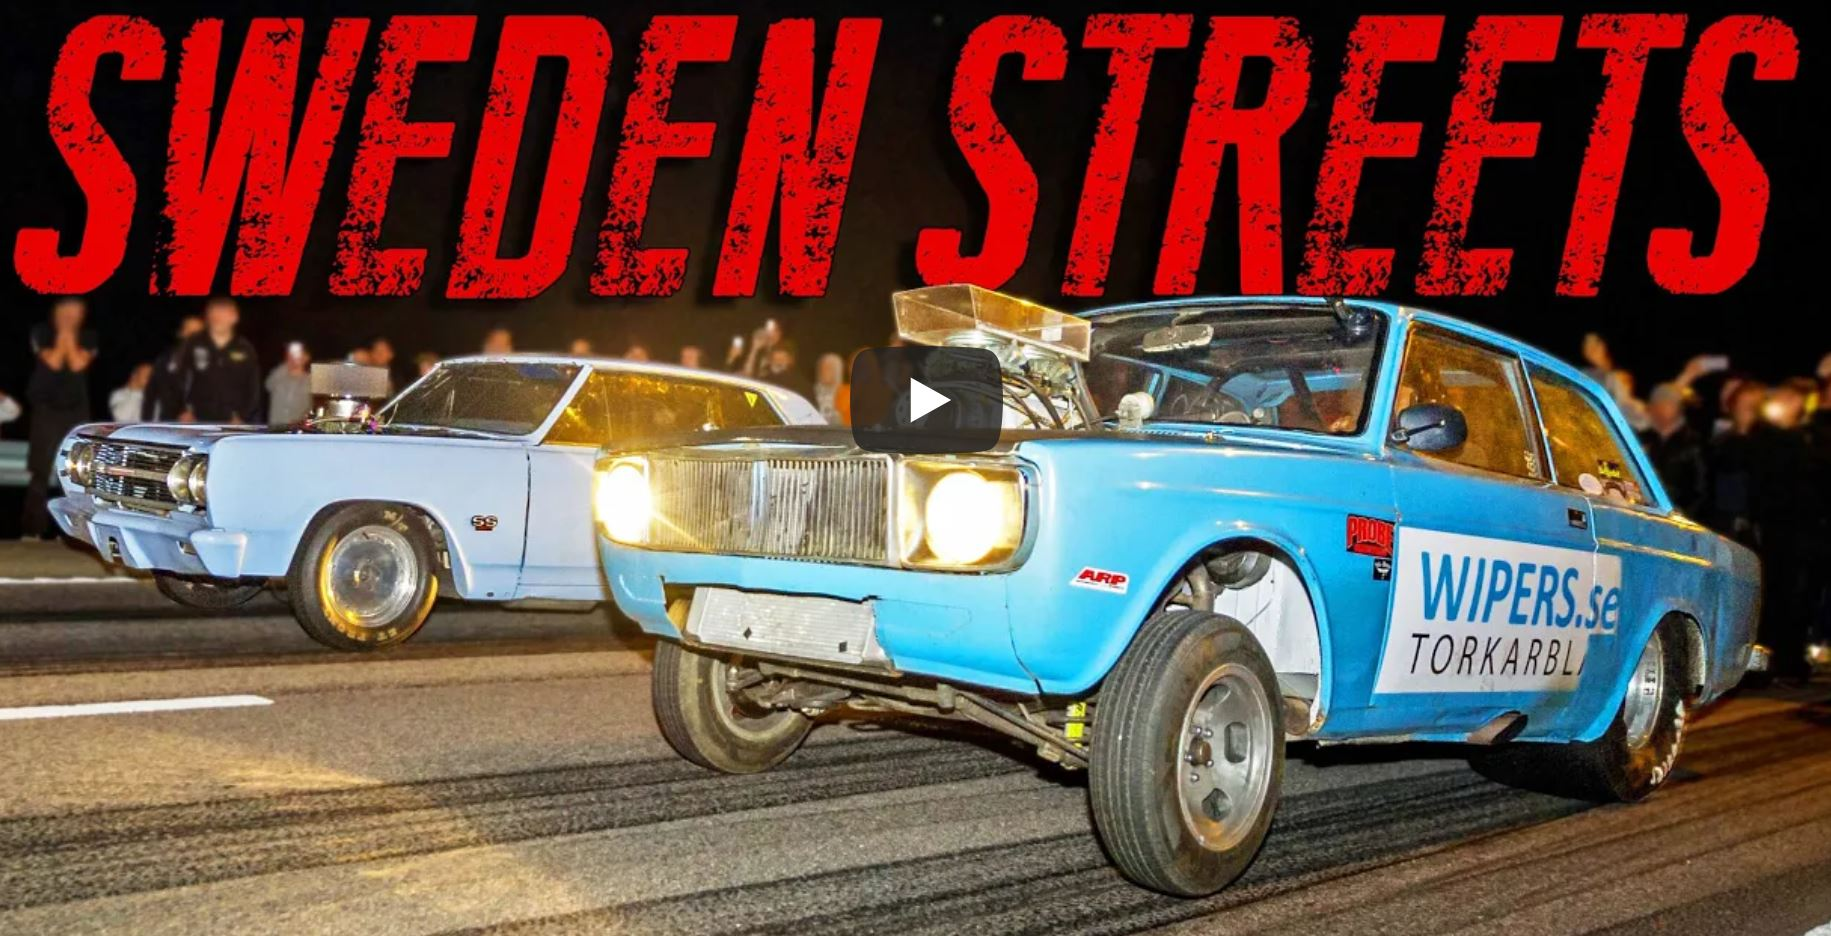 Street Racing In Sweden Is Arguably Some Of The Coolest On Earth. Man We Want To Go See This In Person!